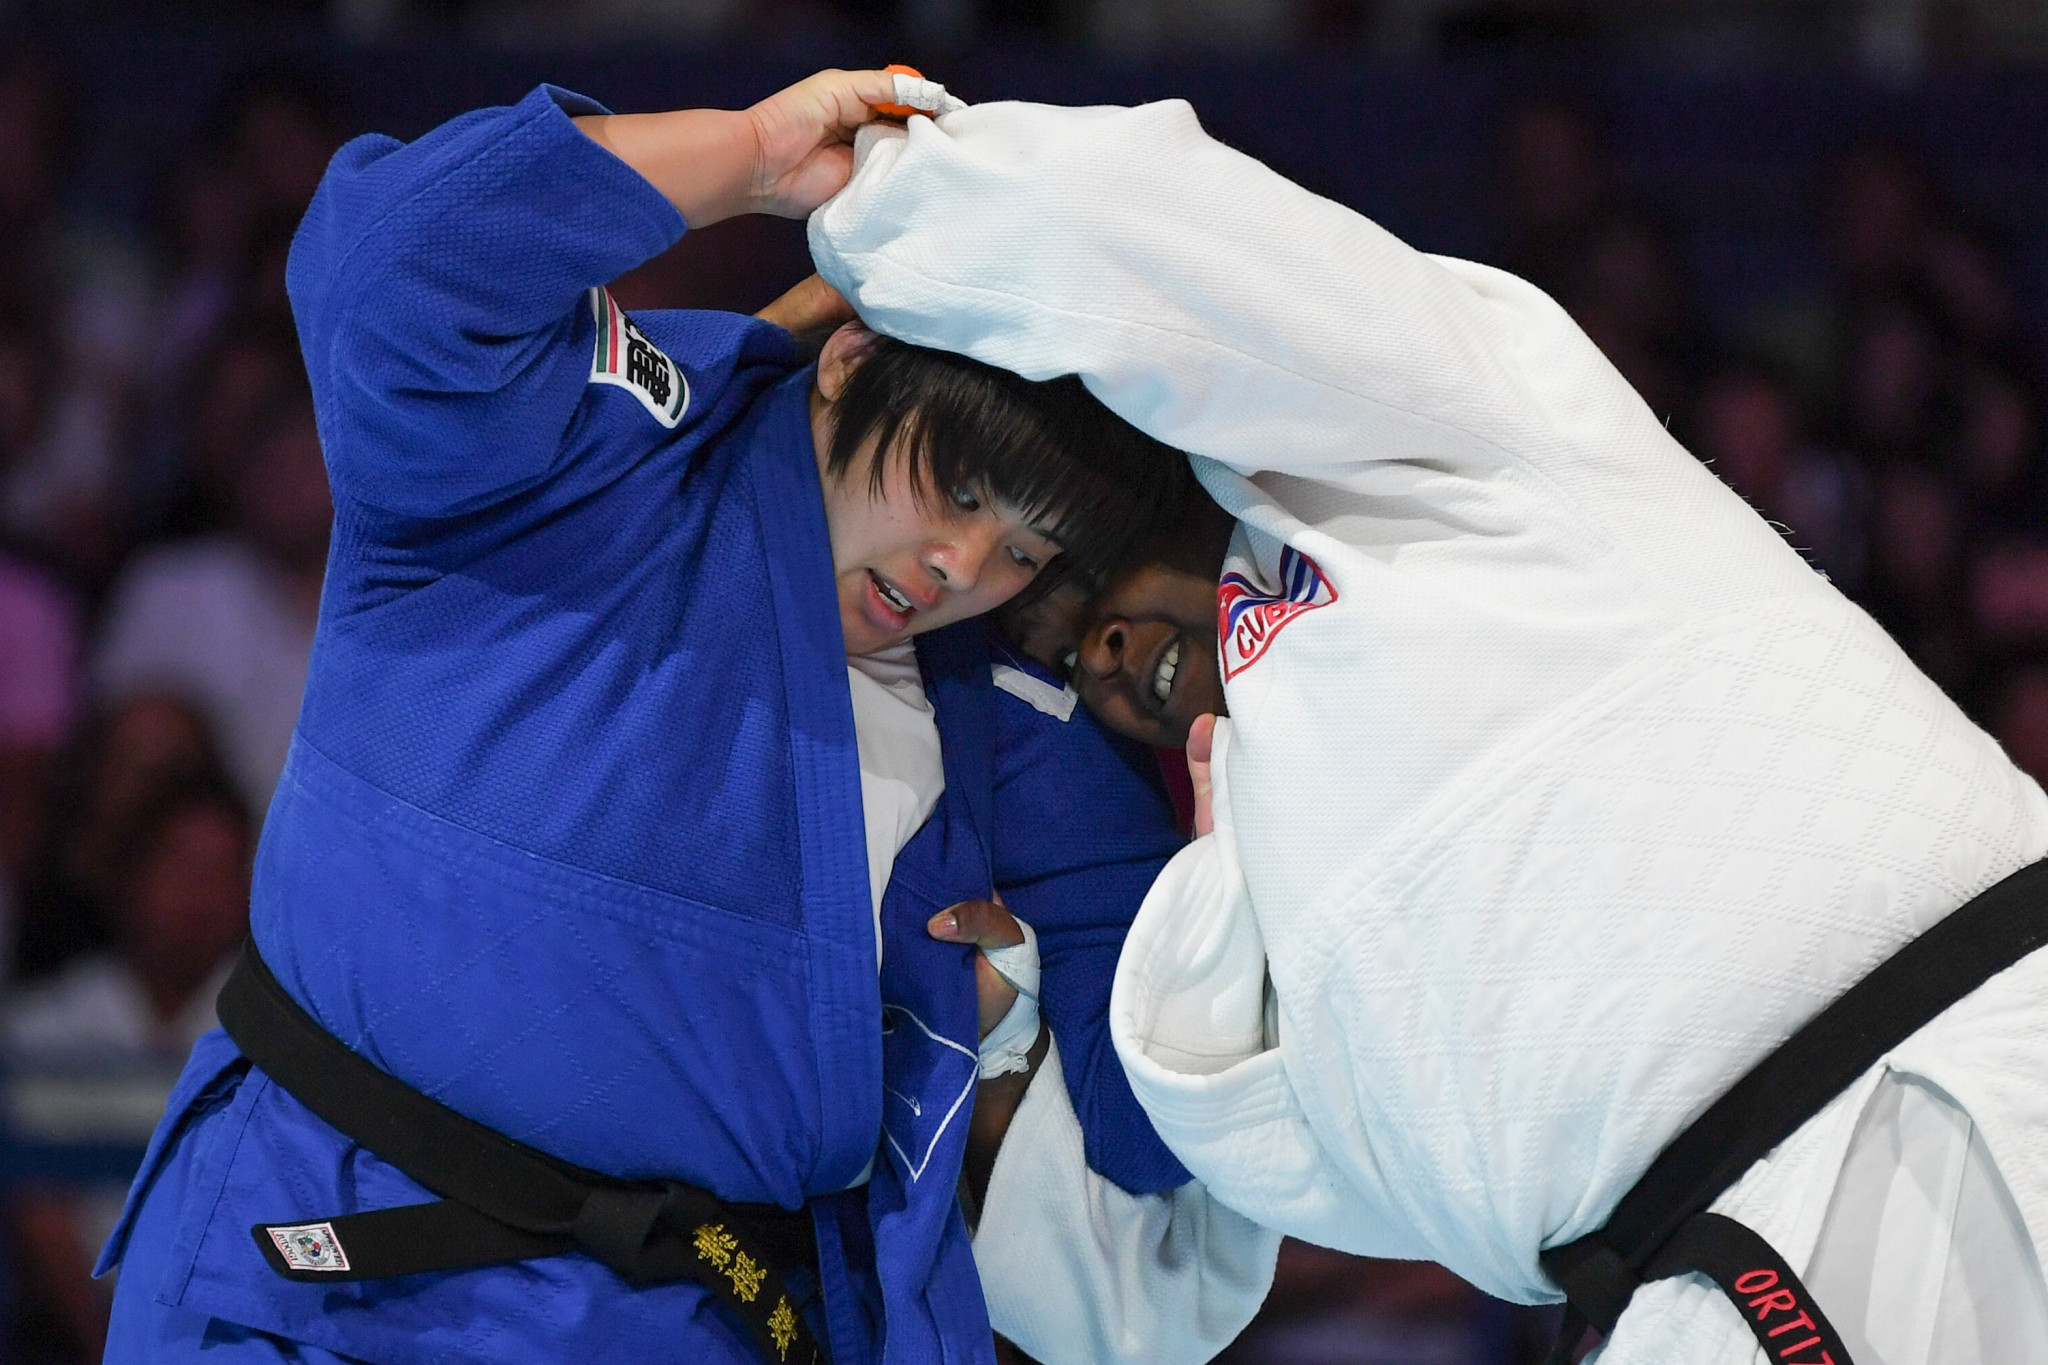 Akira Sone defeated double world champion and former Olympic gold medallist Idalys Ortiz in the final ©Getty Images